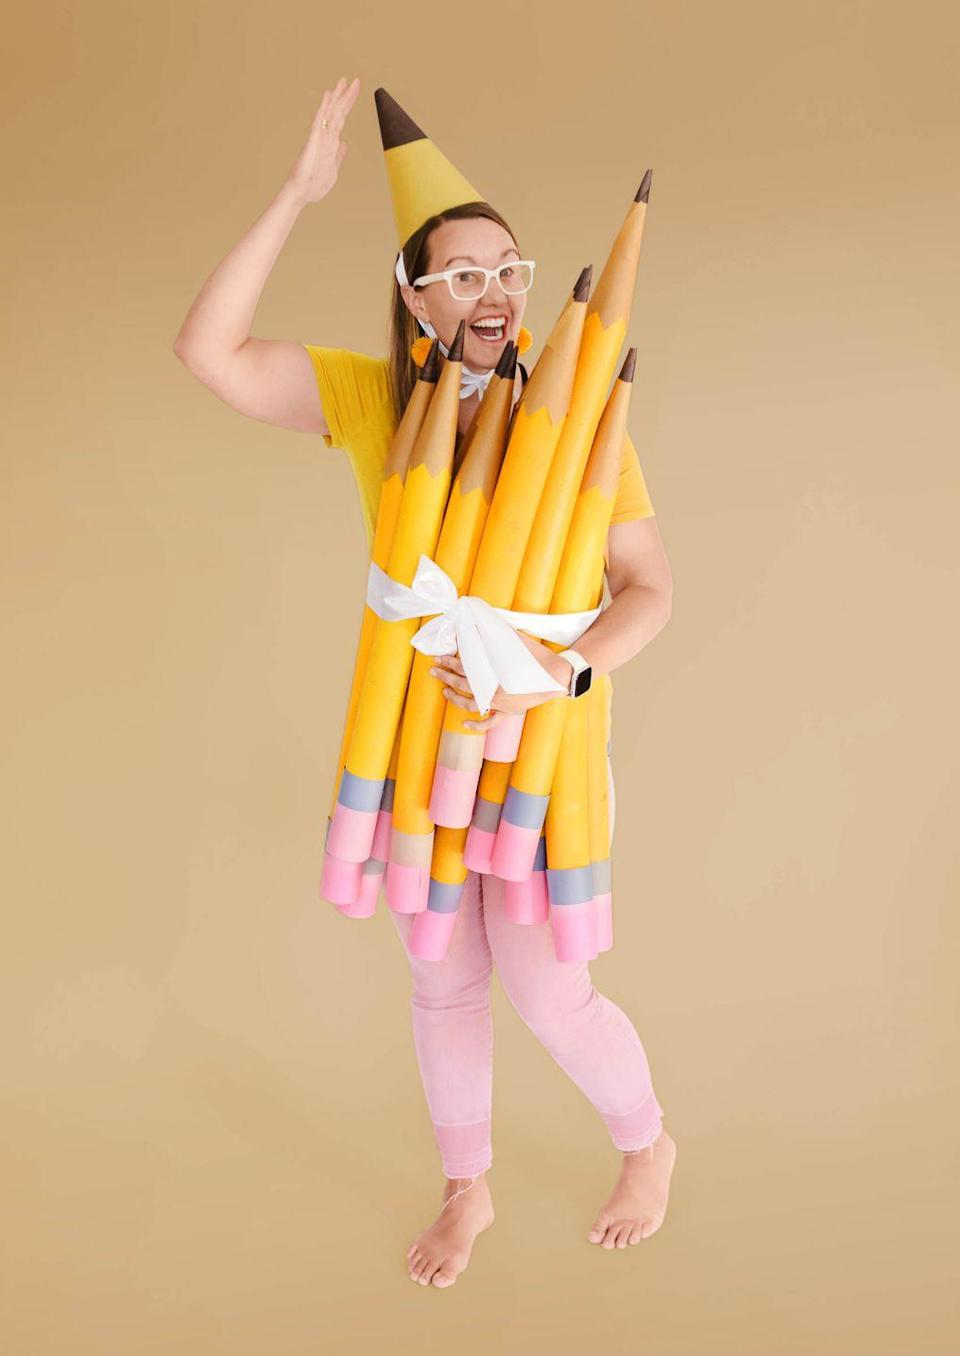 """<p>This costume will have you lookin' sharp! </p><p><strong>Make the costume:</strong> Round up some pool noodles. Coat the summer staple with yellow spray paint (try Rust-Oleum American Accents in Marigold); add brown paper-cone tips. Wrap ends with pink and gray craft paper to make erasers. Secure the bundle around yourself with ribbon. Extra credit for a corresponding pointy party hat.<strong><br></strong></p><p><strong>Get the tutorial at <strong><a href=""""https://ohyaystudio.com/a-bouquet-of-newly-sharpened-pencils-costume-and-how-much-i-love-youve-got-mail/"""" rel=""""nofollow noopener"""" target=""""_blank"""" data-ylk=""""slk:Oh Yay Studio"""" class=""""link rapid-noclick-resp"""">Oh Yay Studio</a></strong>.</strong></p><p><a class=""""link rapid-noclick-resp"""" href=""""https://www.amazon.com/Oodles-Noodles-Deluxe-Foam-Pool/dp/B01LBEX84S/ref=sr_1_1_sspa?linkCode=ogi&tag=syn-yahoo-20&ascsubtag=%5Bartid%7C10050.g.23785711%5Bsrc%7Cyahoo-us"""" rel=""""nofollow noopener"""" target=""""_blank"""" data-ylk=""""slk:SHOP POOL NOODLES"""">SHOP POOL NOODLES</a></p>"""